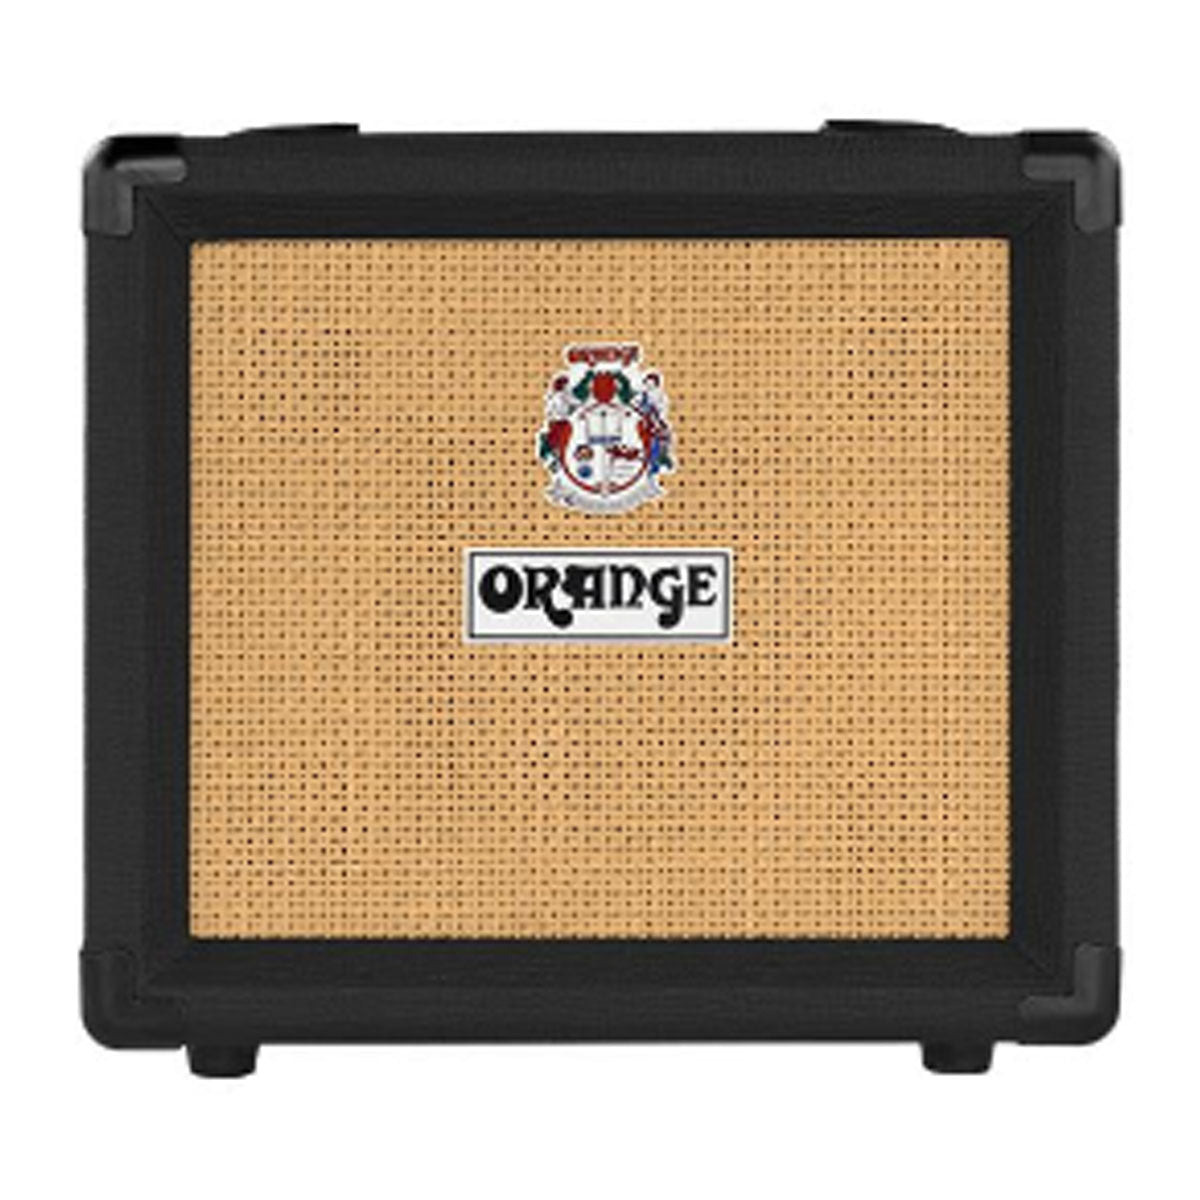 Orange Crush 12 Guitar Amplifier 12w Combo Amp - Black